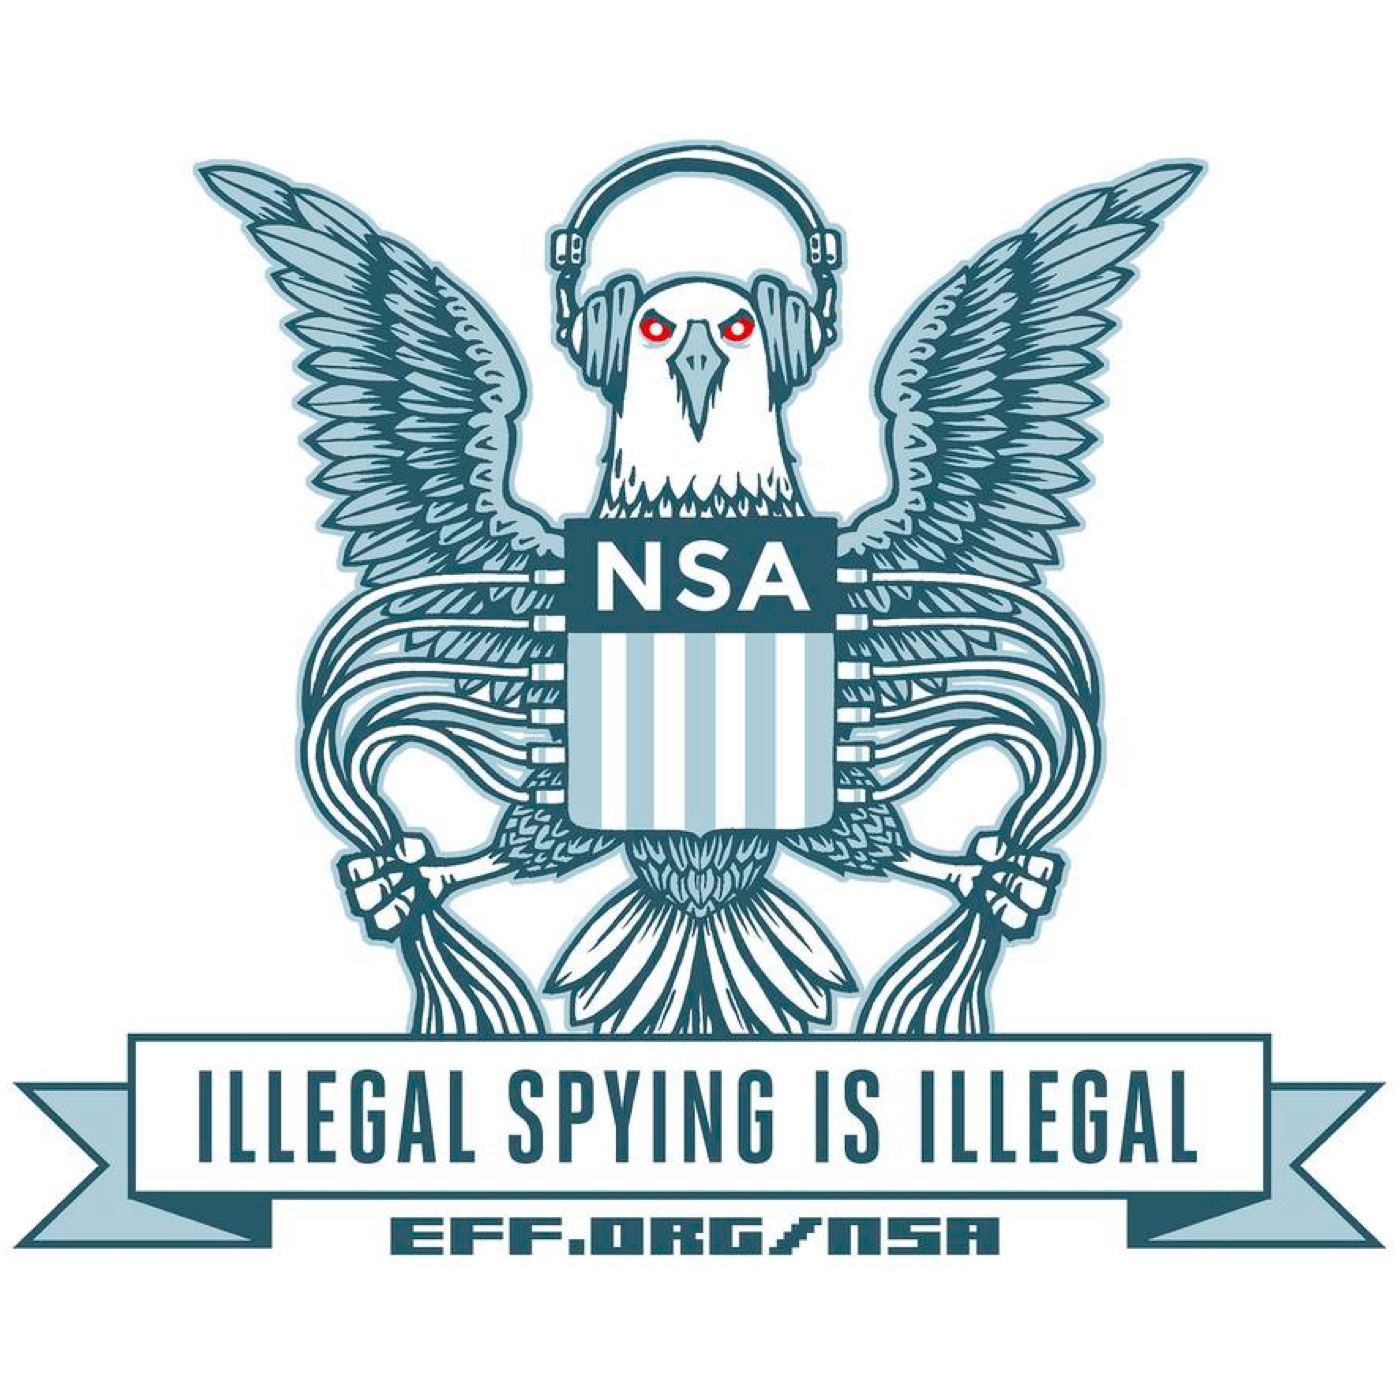 (2015/04/10) Poking the watchful eye (NSA Spying)